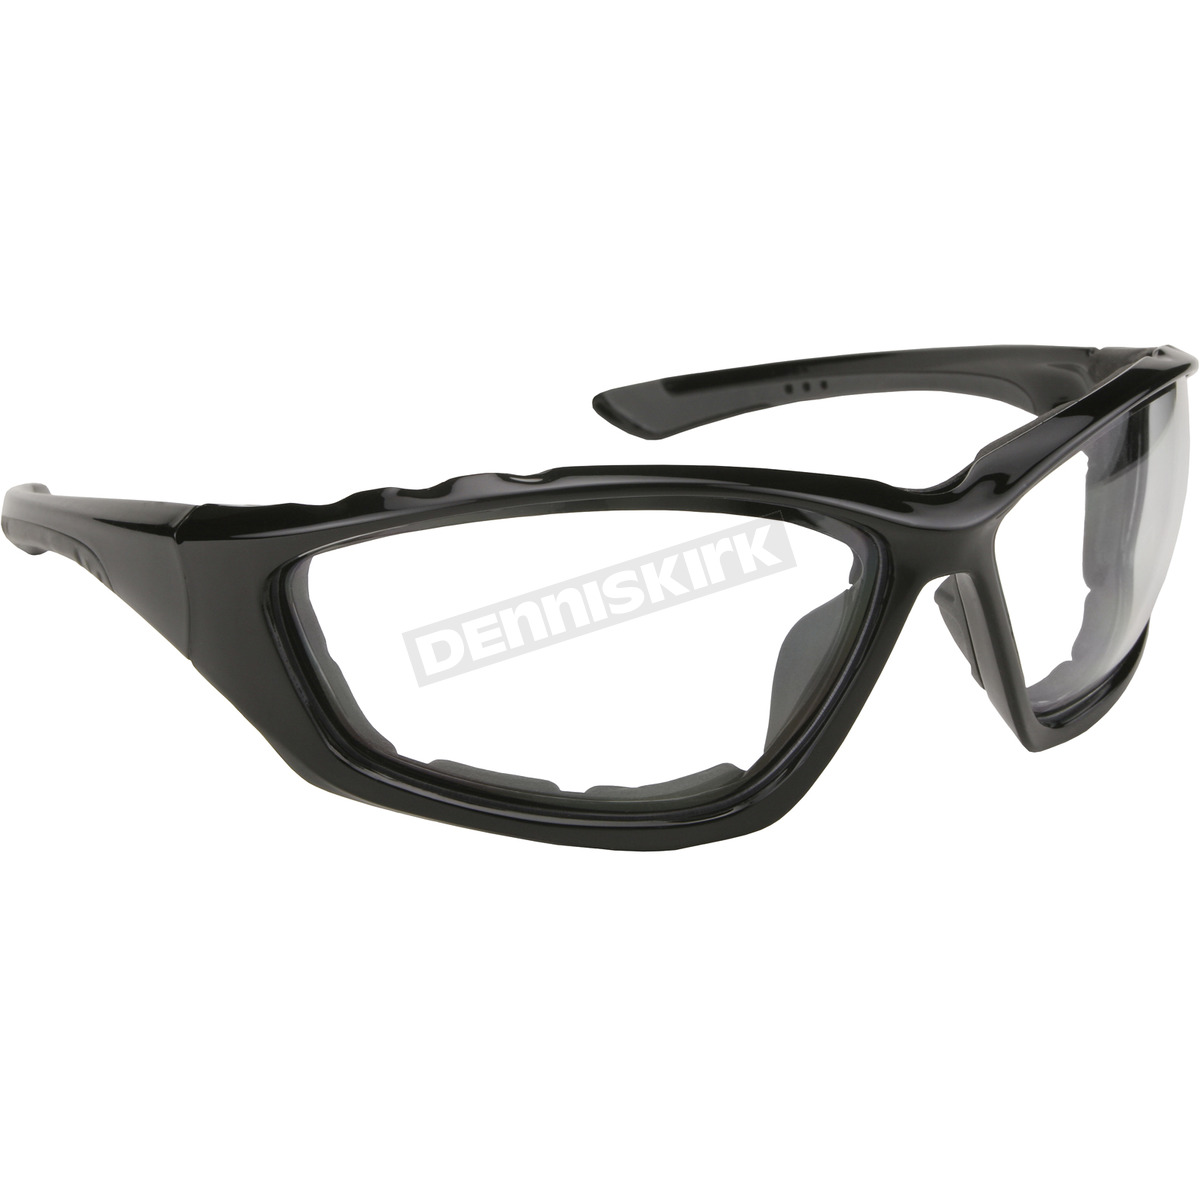 kickstart eyewear black sunglasses w clear lens 43015